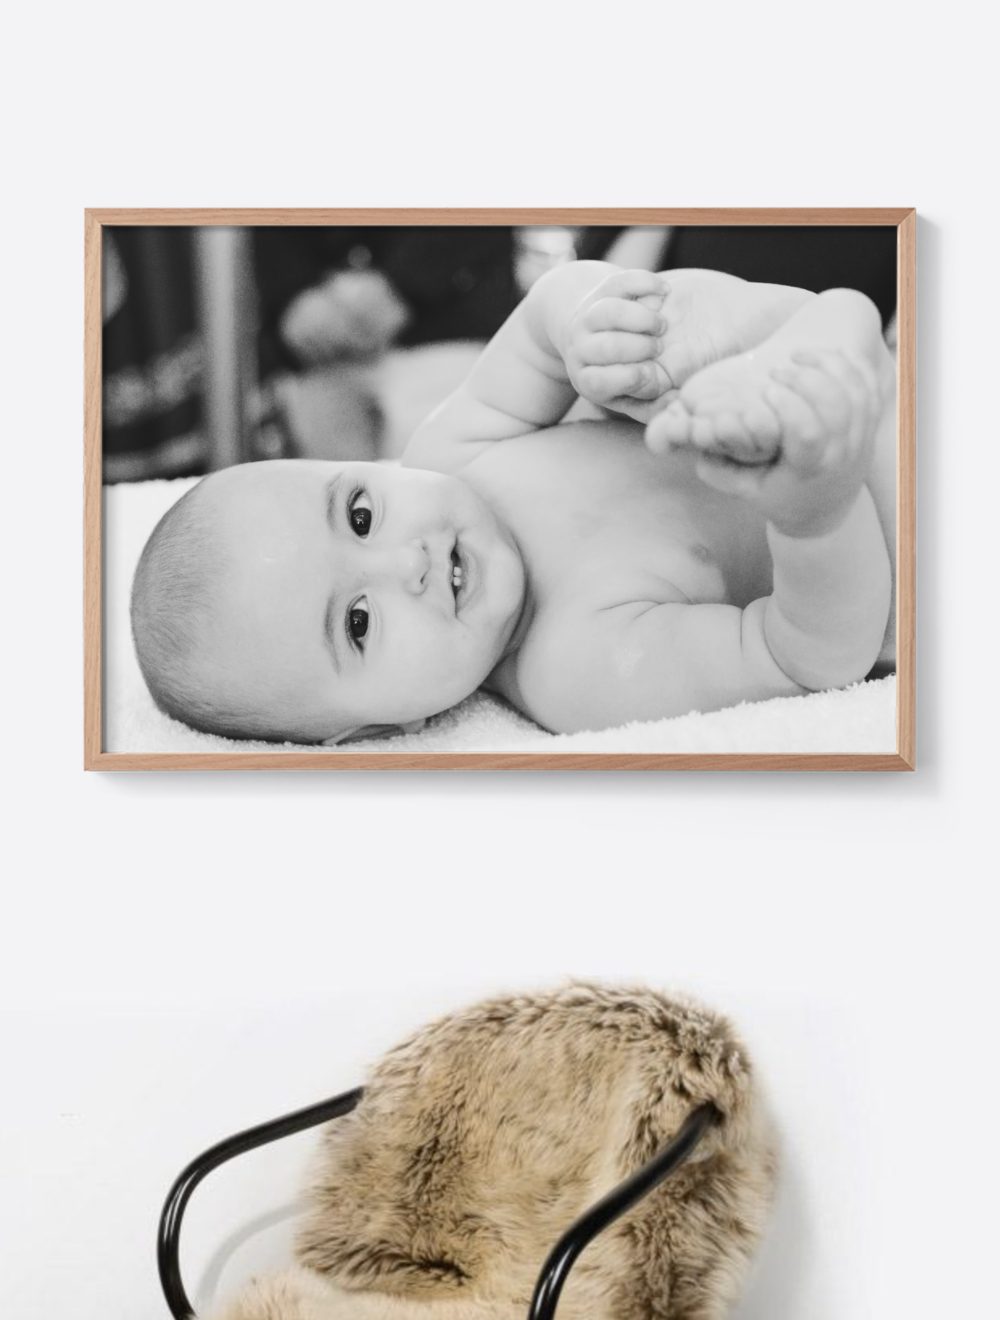 All images printed to fill frame for a fresh and contemporary style.